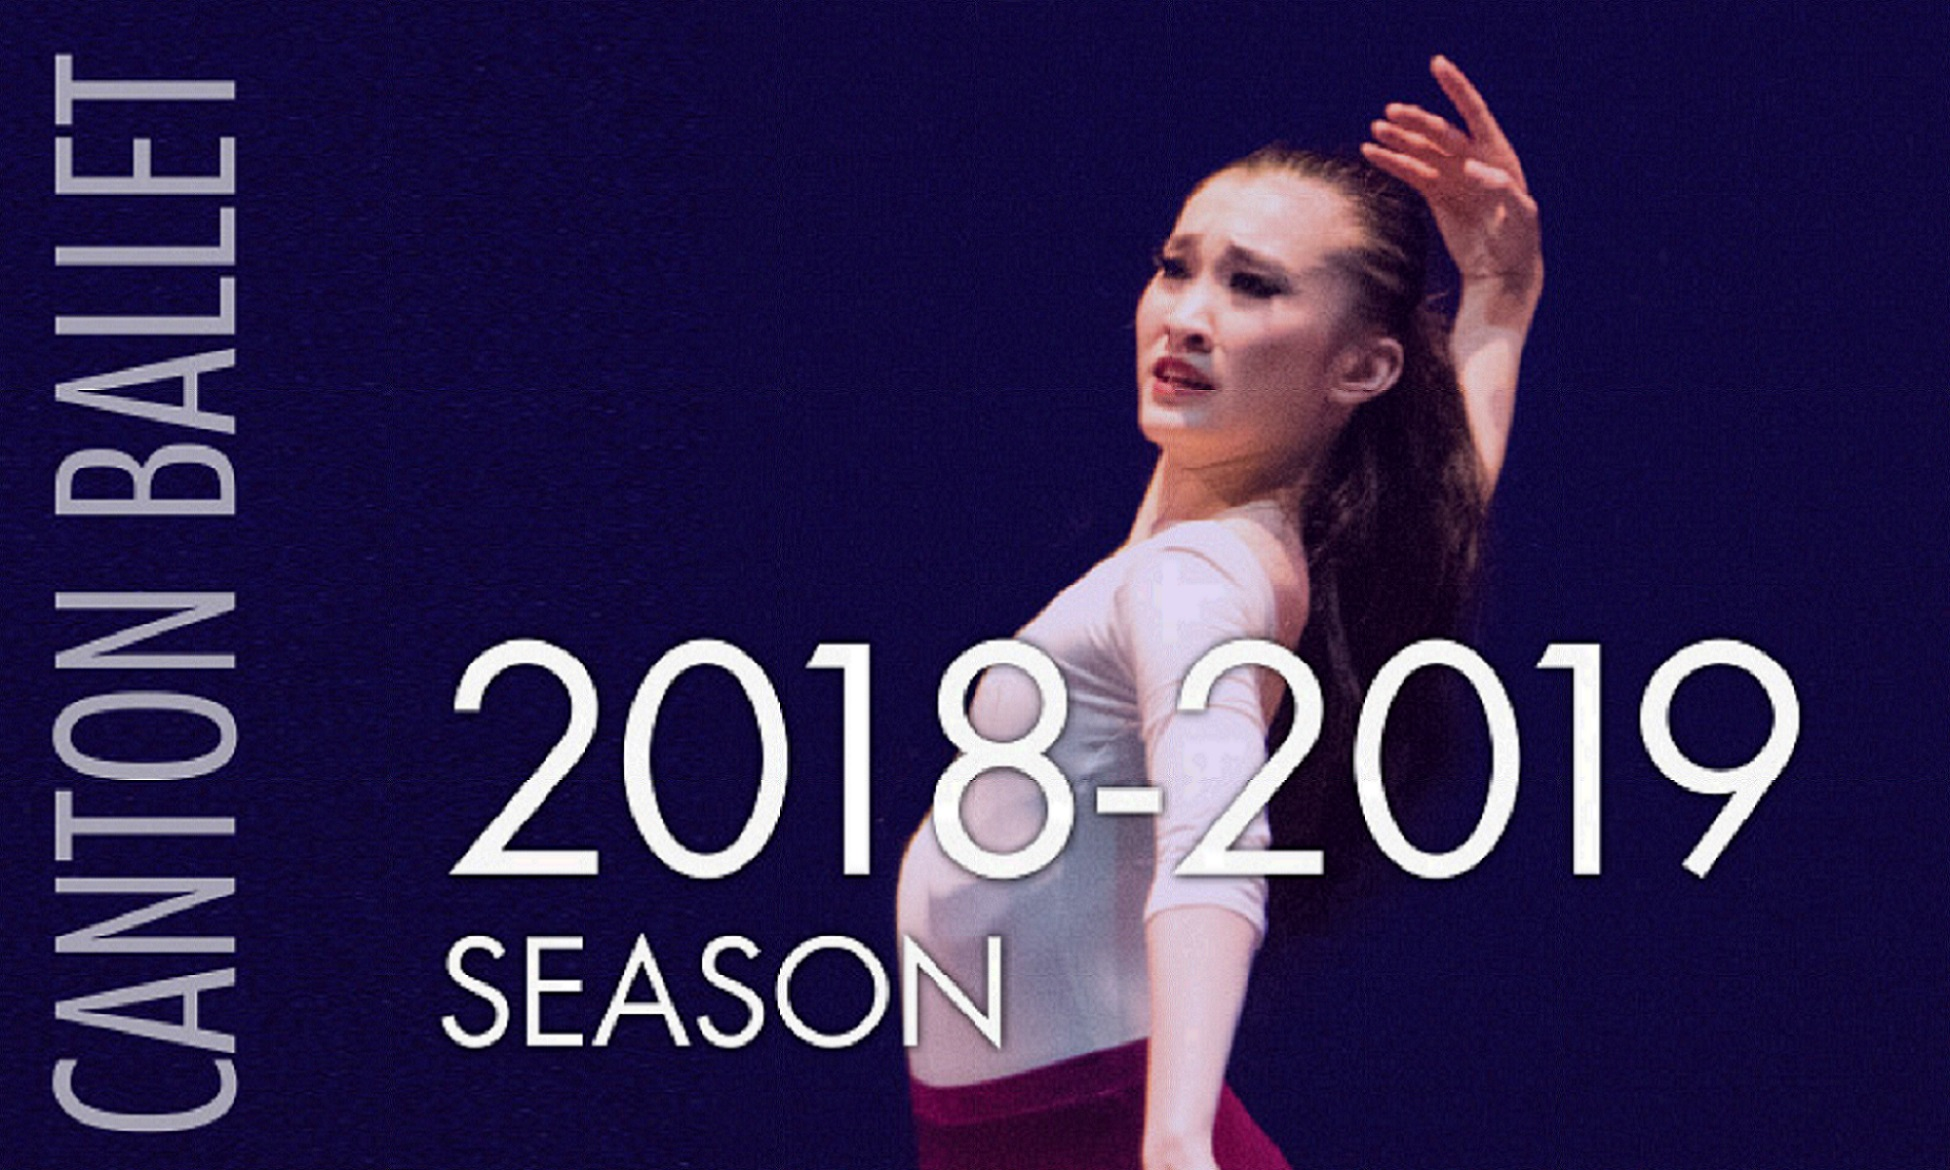 Image for 2018-2019 Subscription  Season - Level C